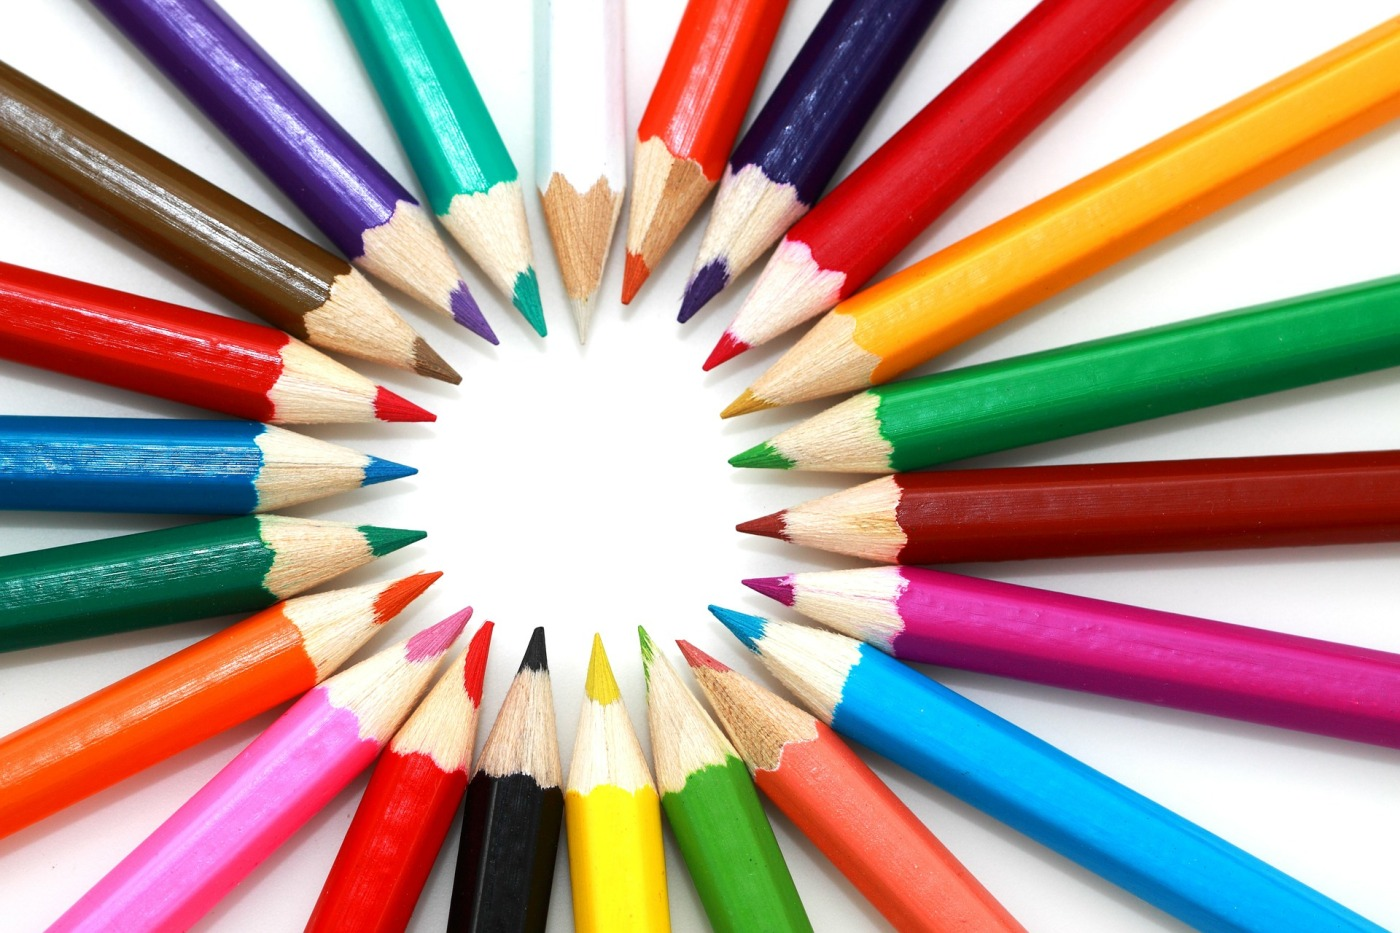 Image of colouring pencils